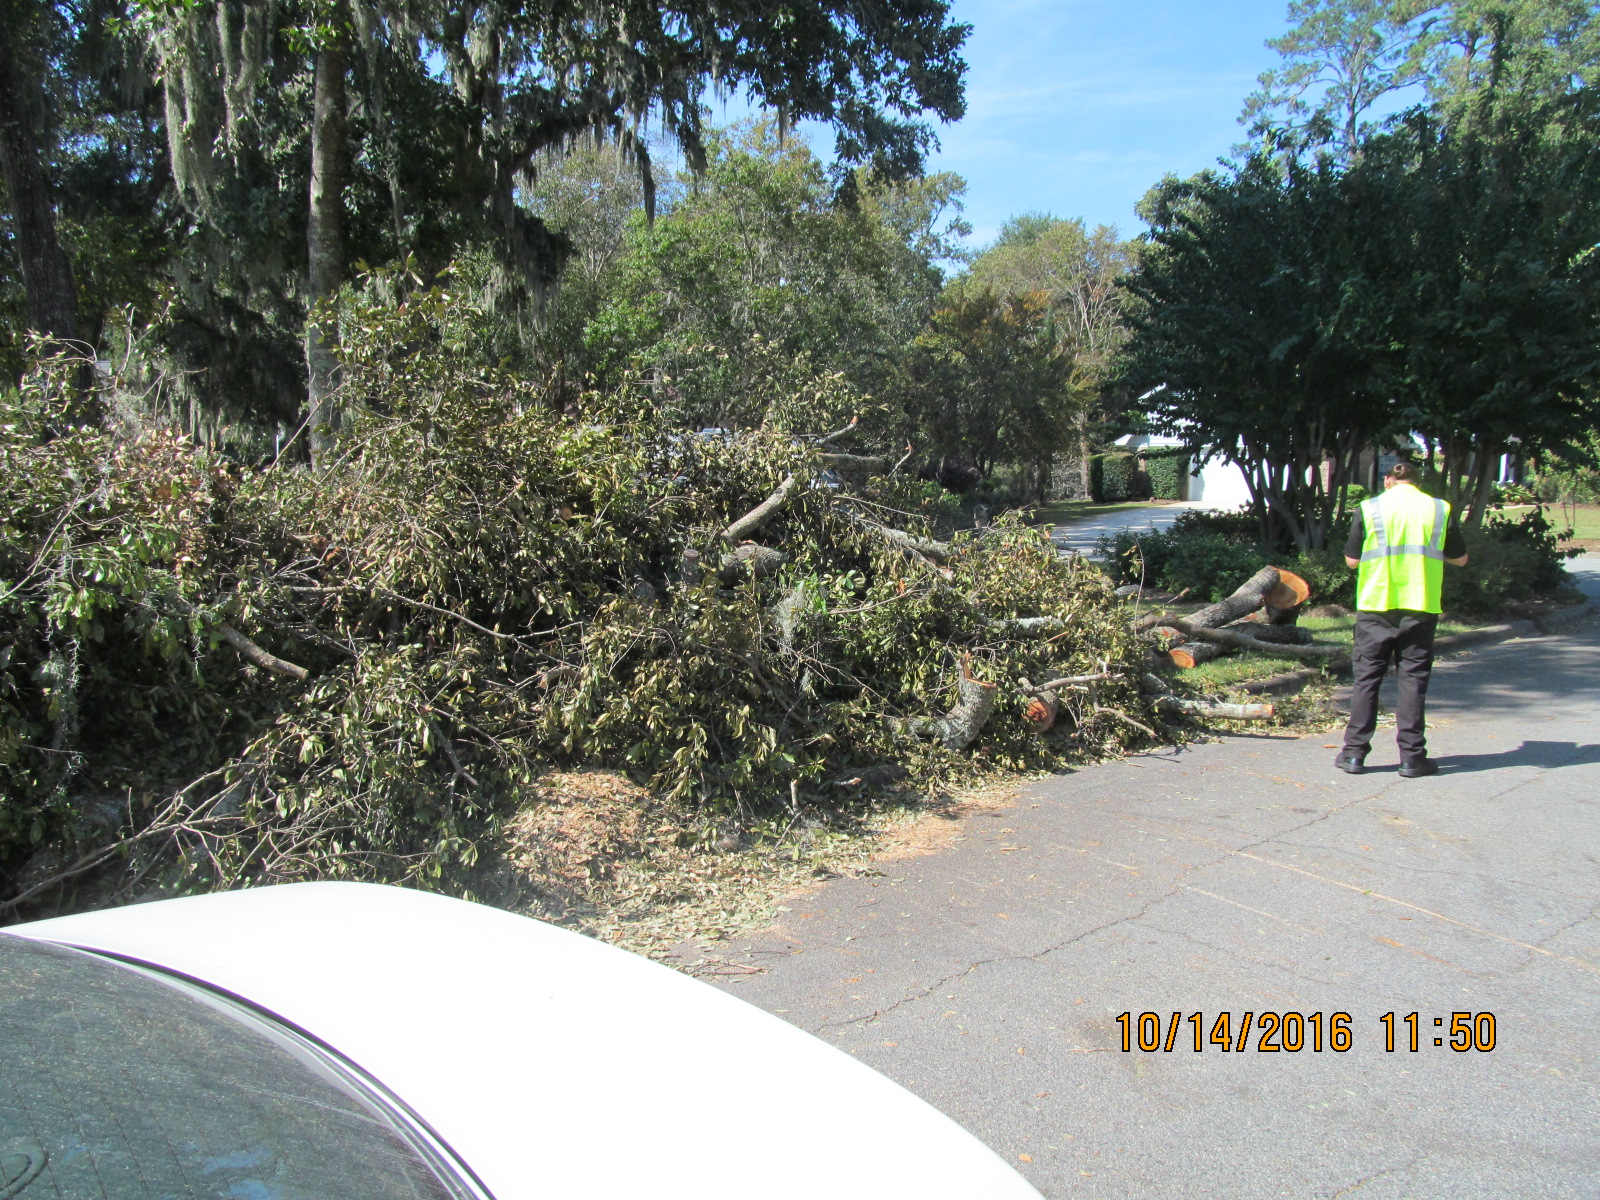 City of Savannah at work (1)